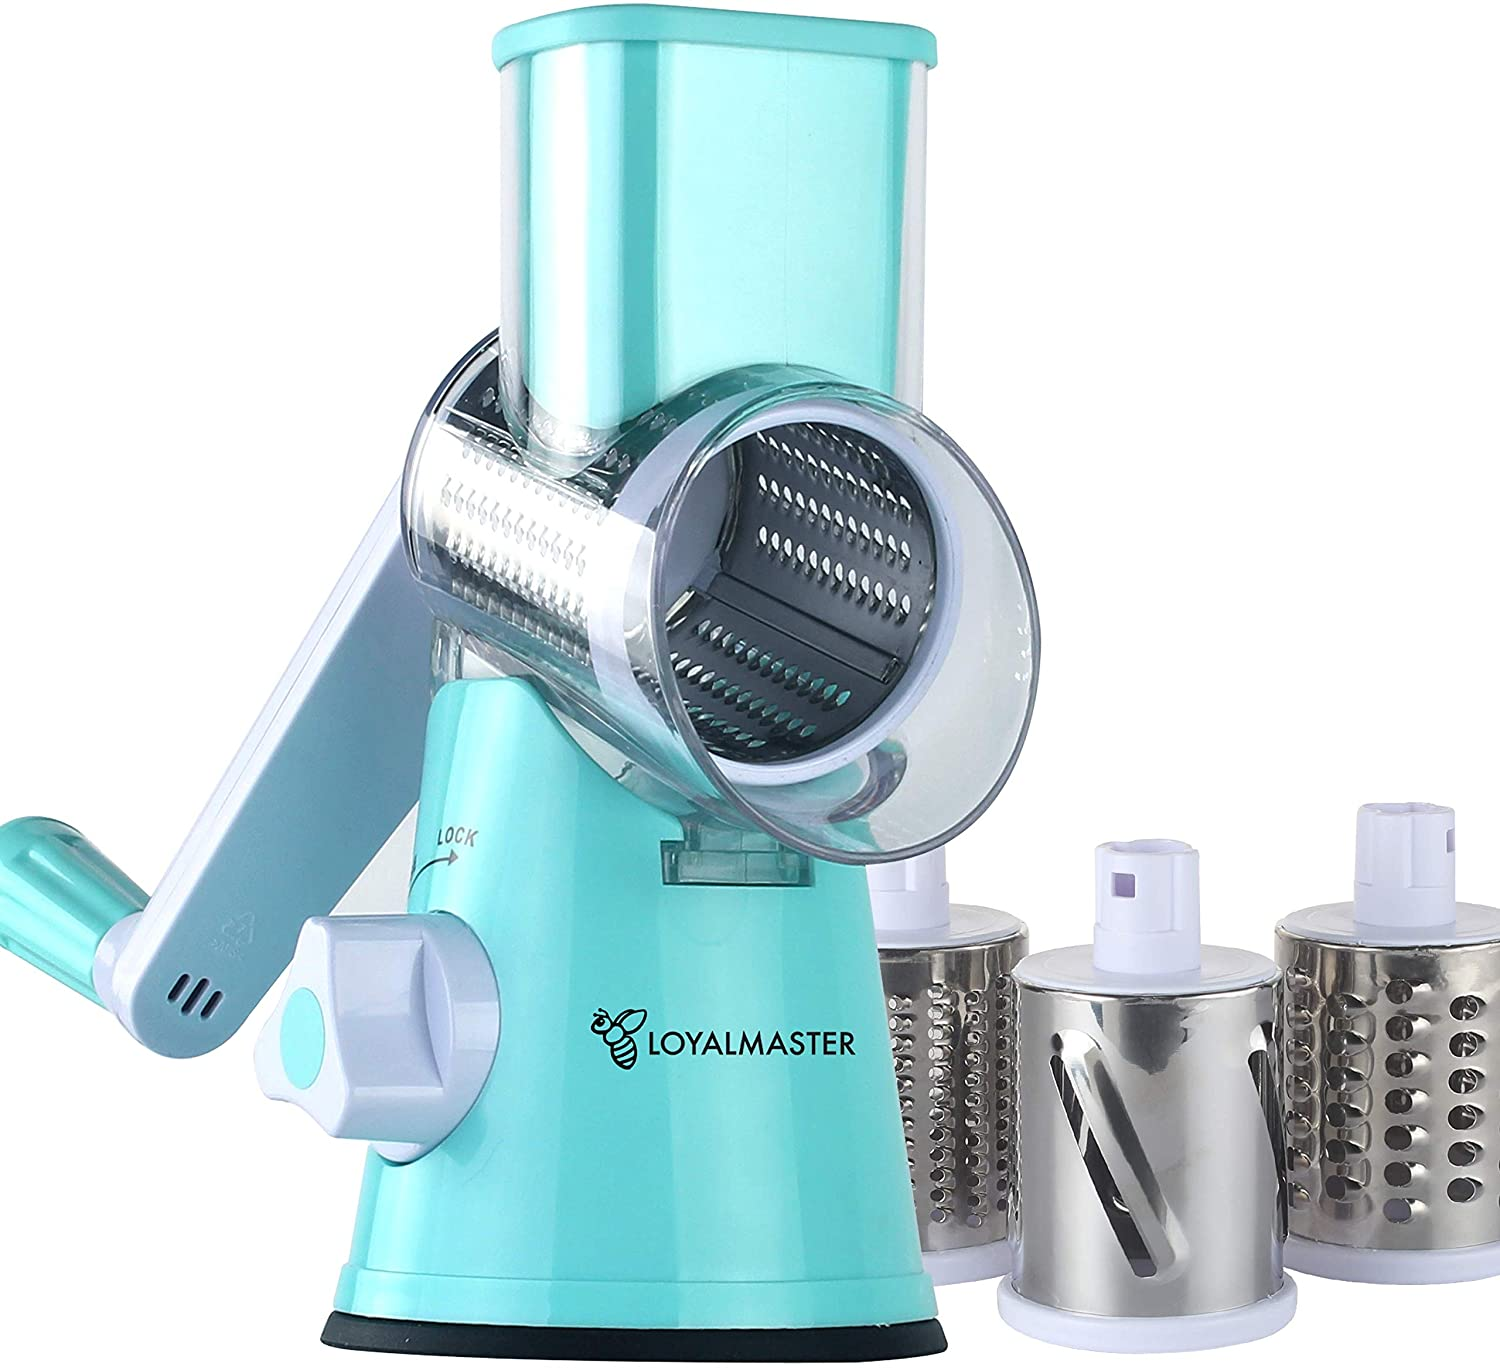 Rotary Grater Drum Slicer Shredder Grinder - Speed Round Mandoline for Vegetable, Cheese, Carrot, Potato, Nut - Tumbling Box with 3 Sharp Stainless Steel Drums - Strong Suction Base - LOYALMASTER